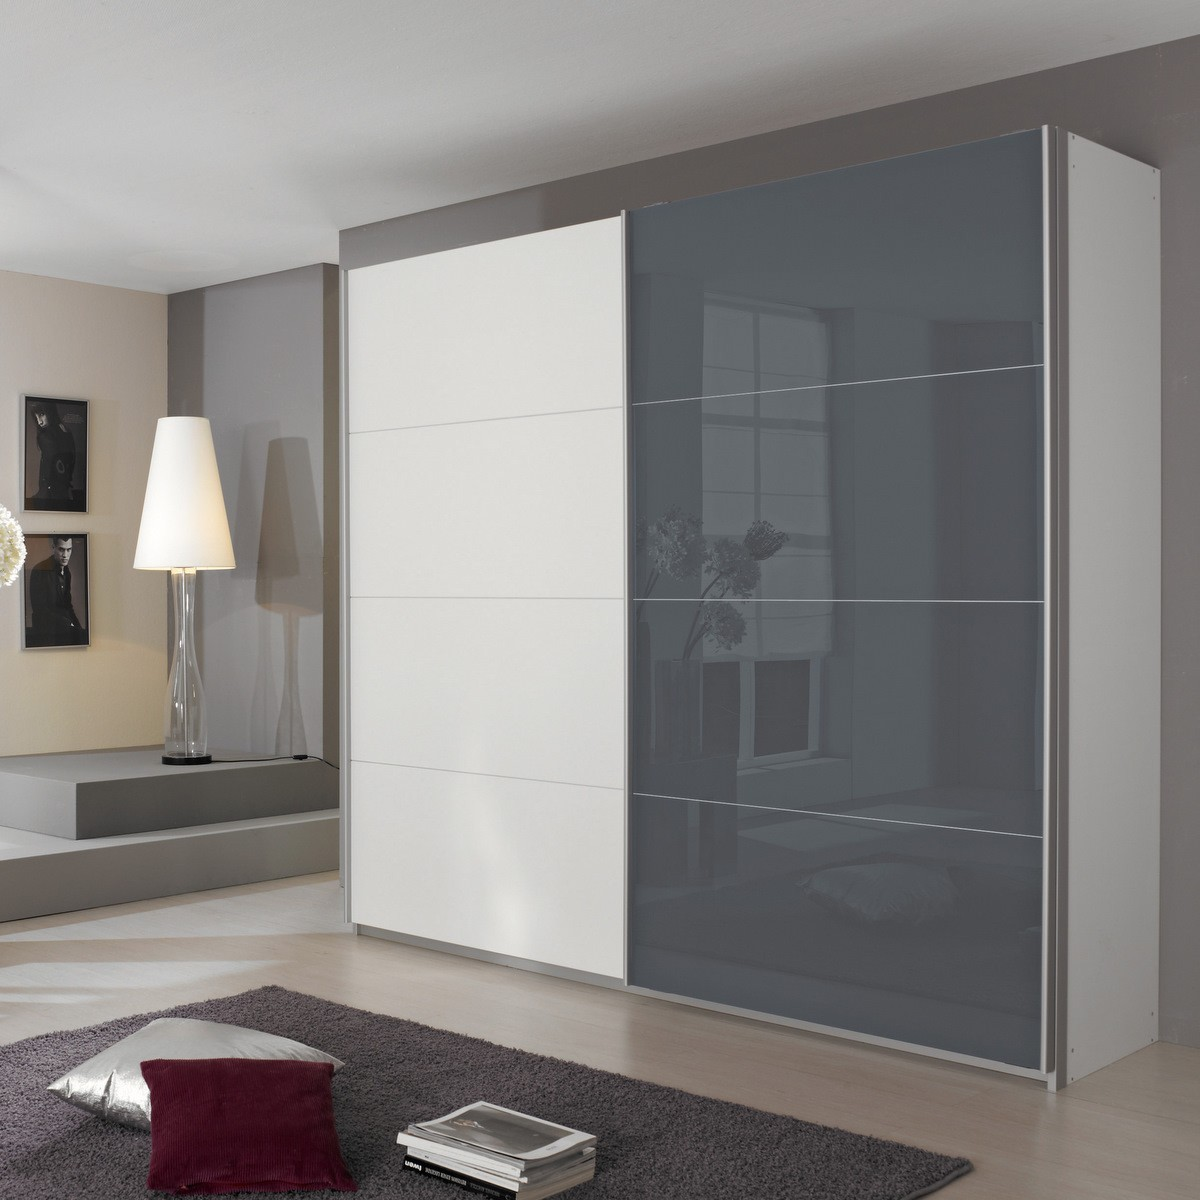 schwebet renschrank quadra wei glas grau 271 cm ebay. Black Bedroom Furniture Sets. Home Design Ideas